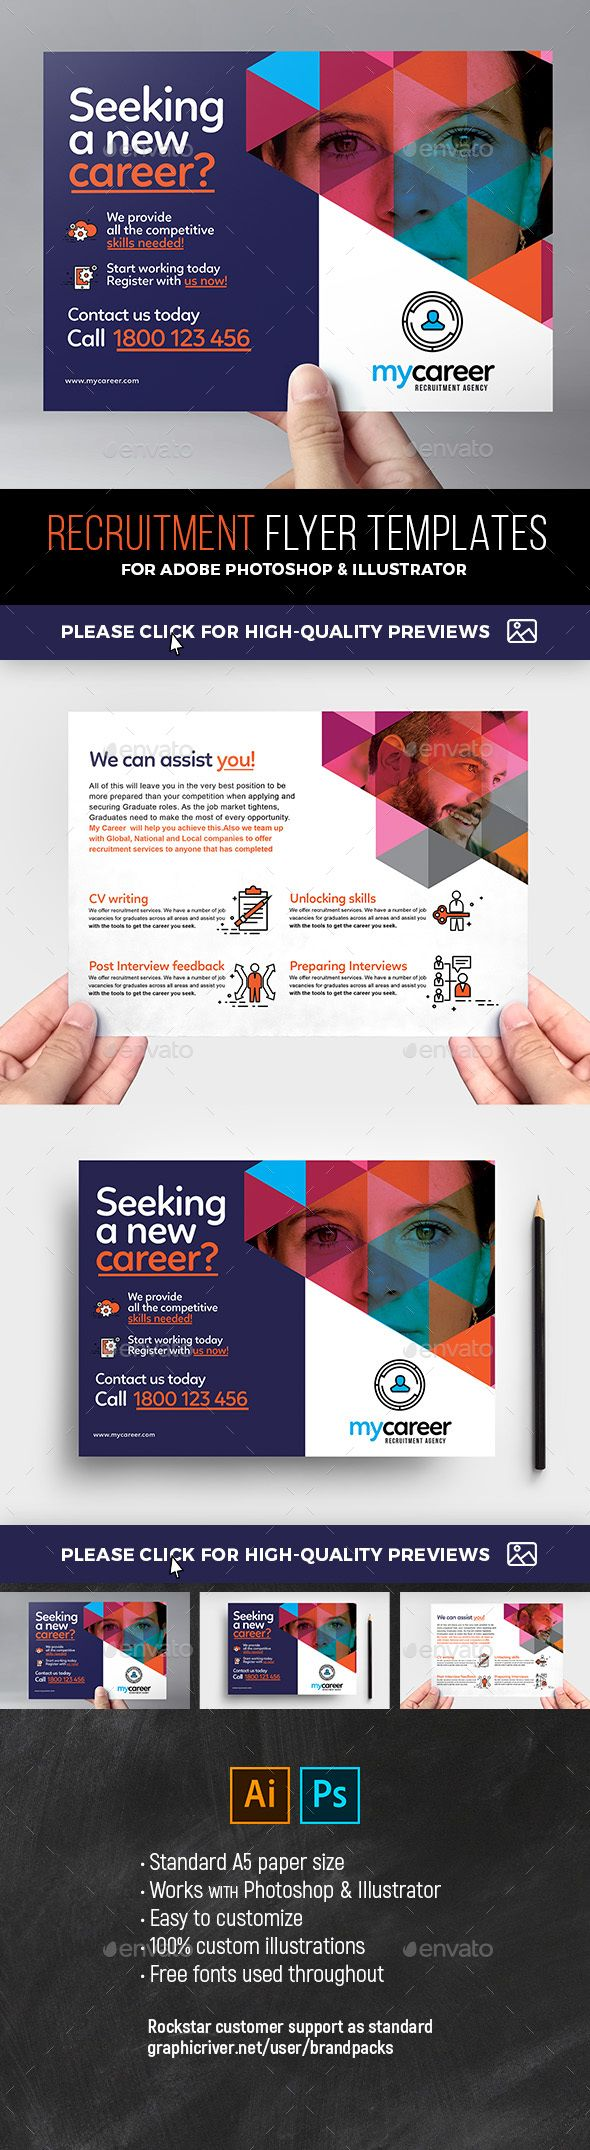 recruitment agency flyer templates. print-templates flyers corporate